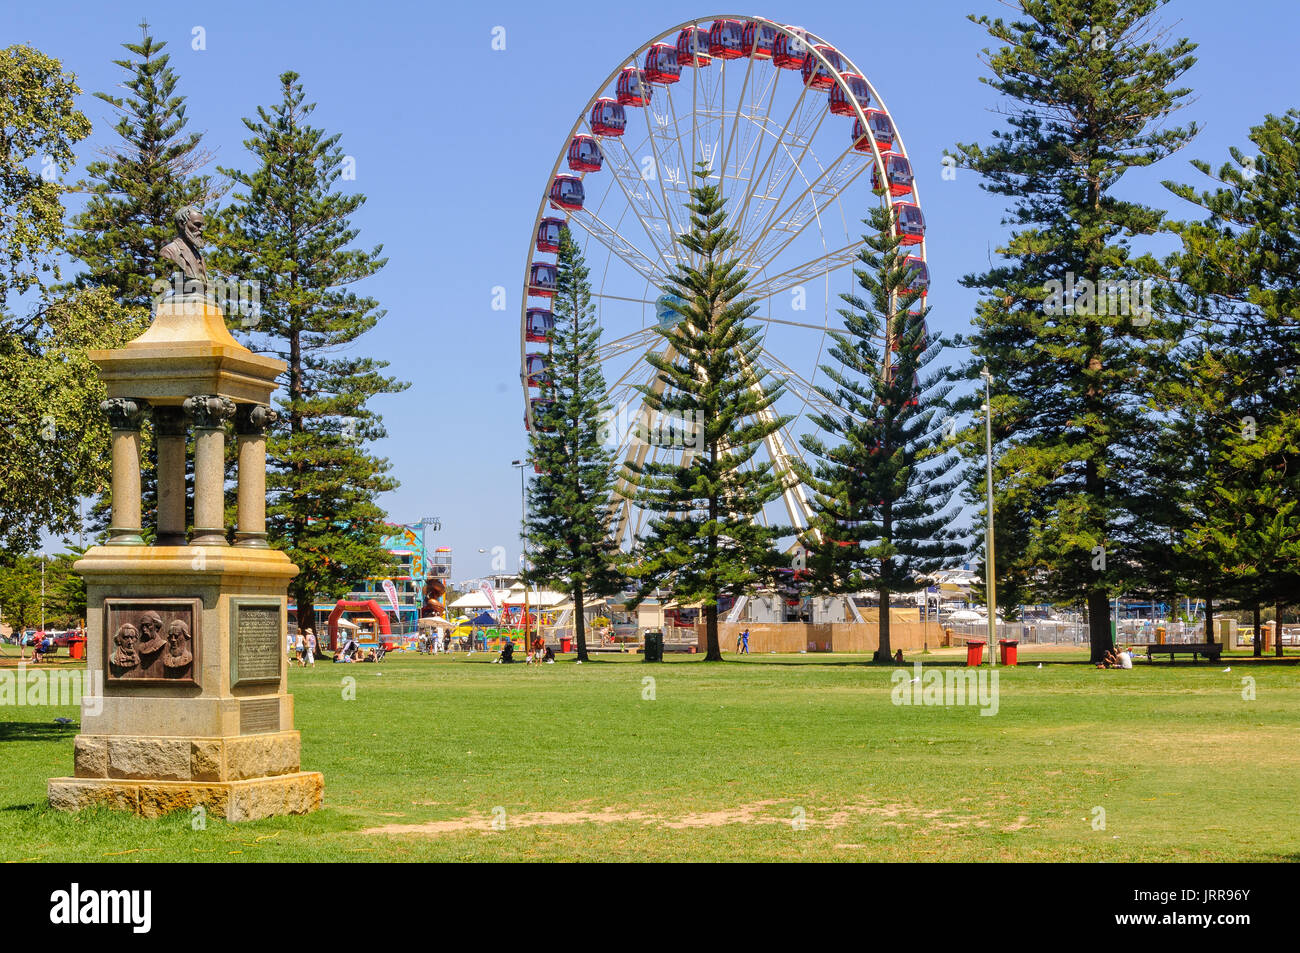 Ferris wheel and Explorers' Monument in the Esplanade Park - Fremantle, WA, Australia - Stock Image